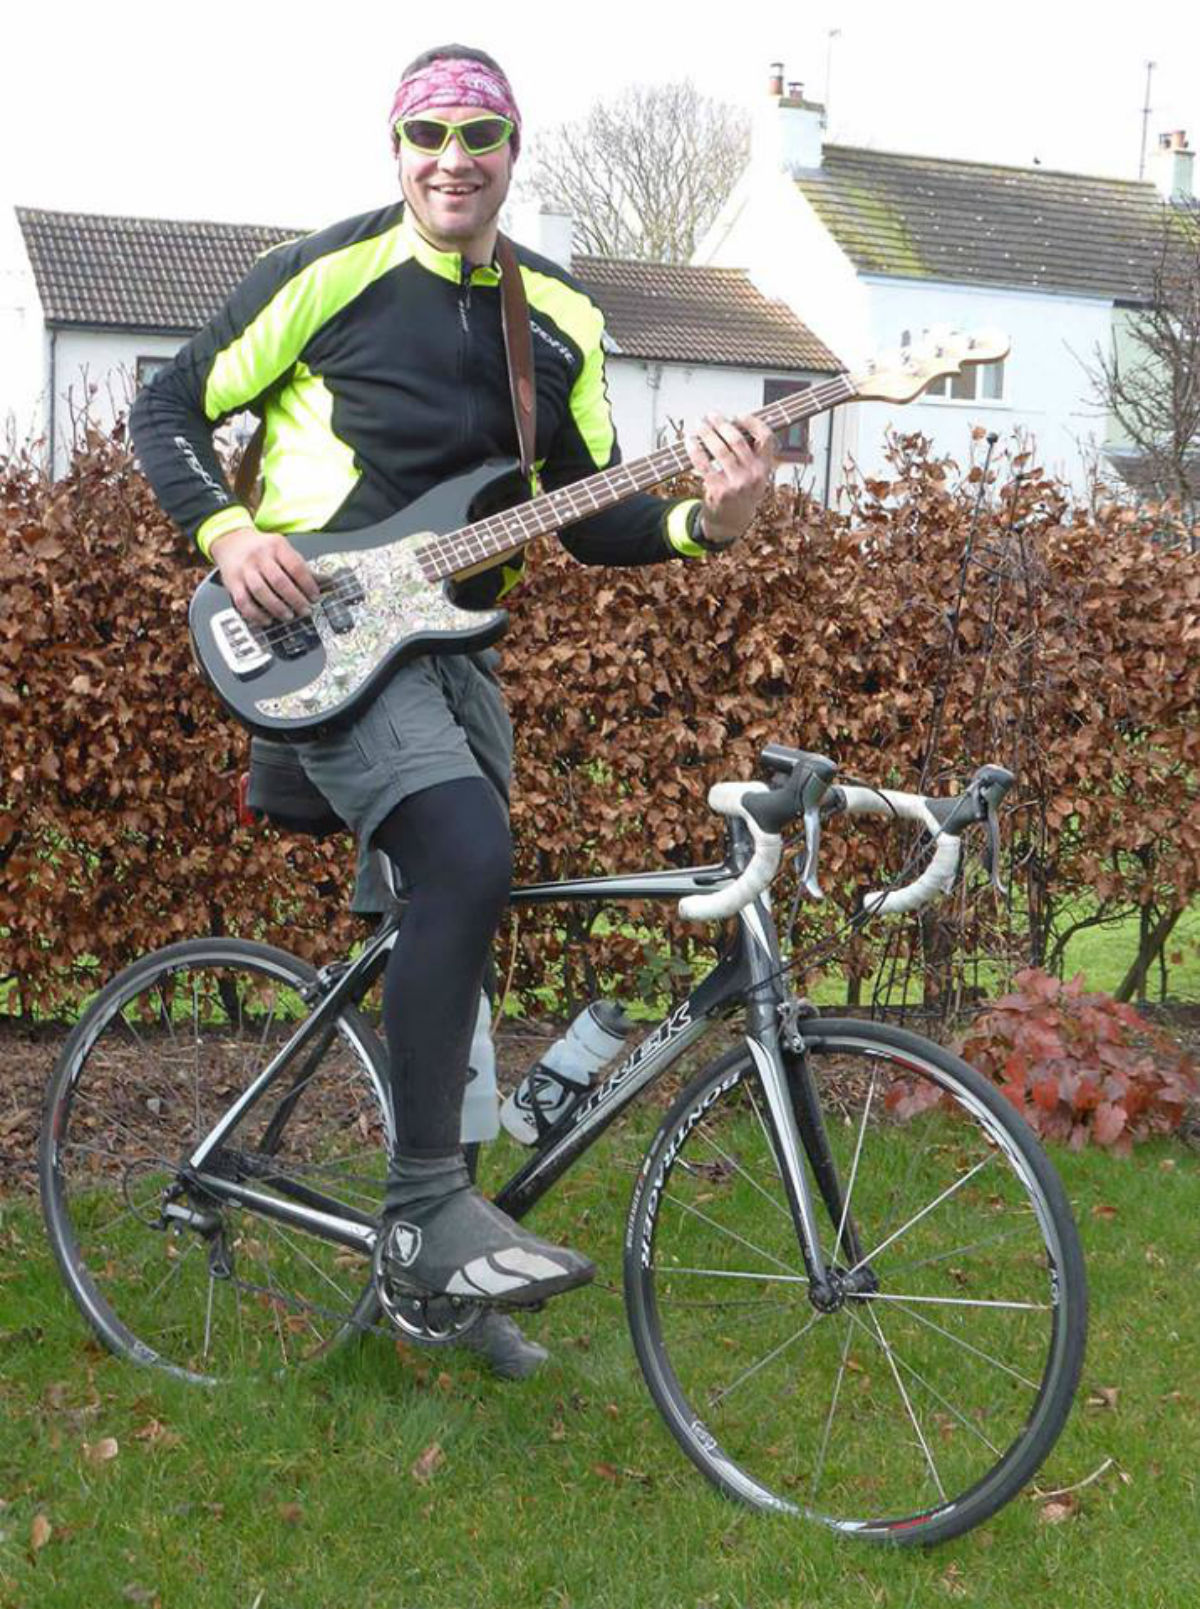 CHARITABLE RIDE: Mark Stokes, who will cycle 110 miles before playing at a fundraising show for Gaby Alderson.